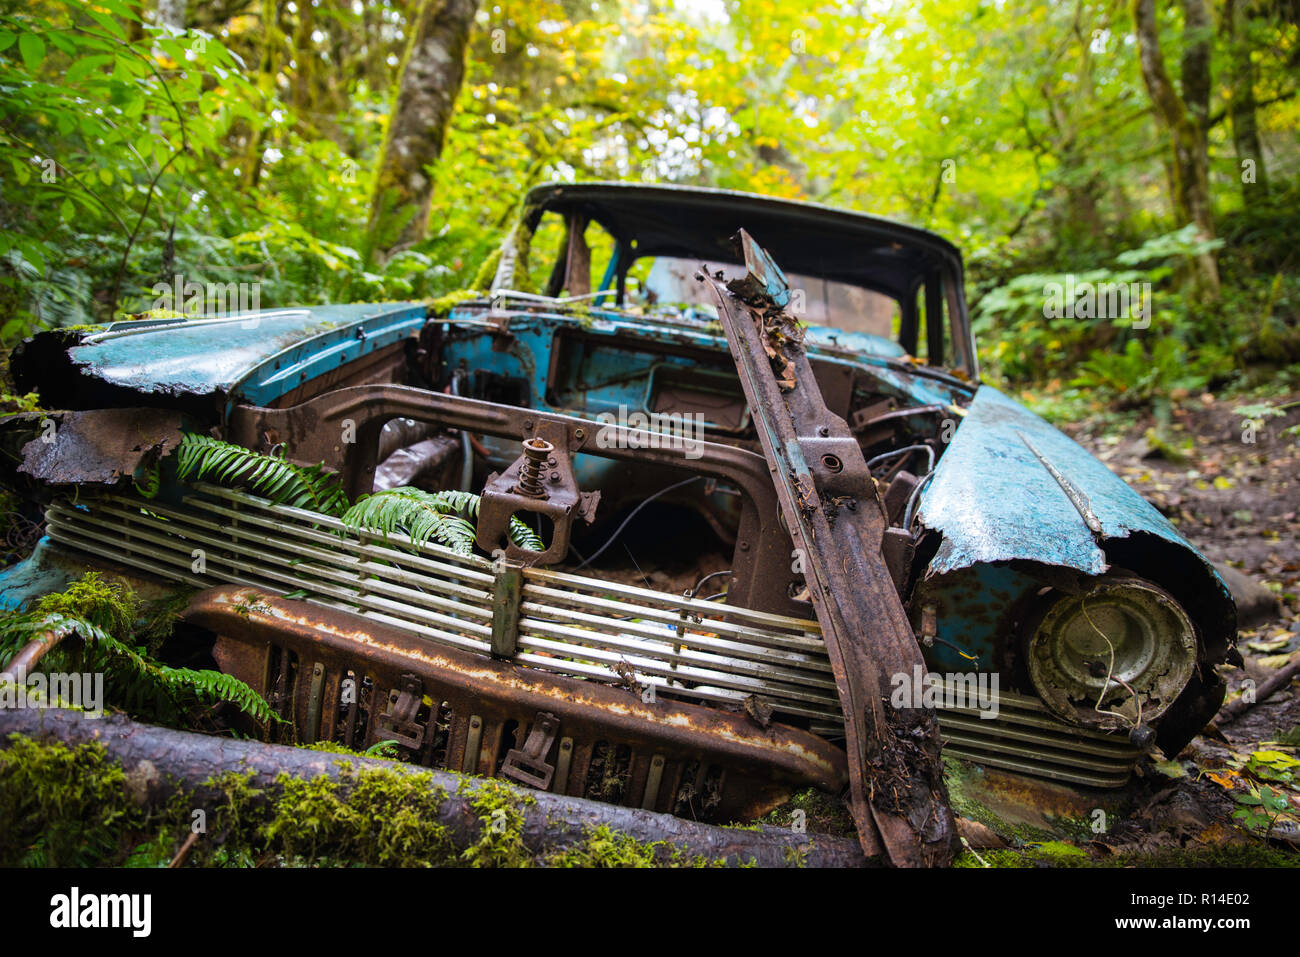 Rusty forgotten old car in the forest - Stock Image